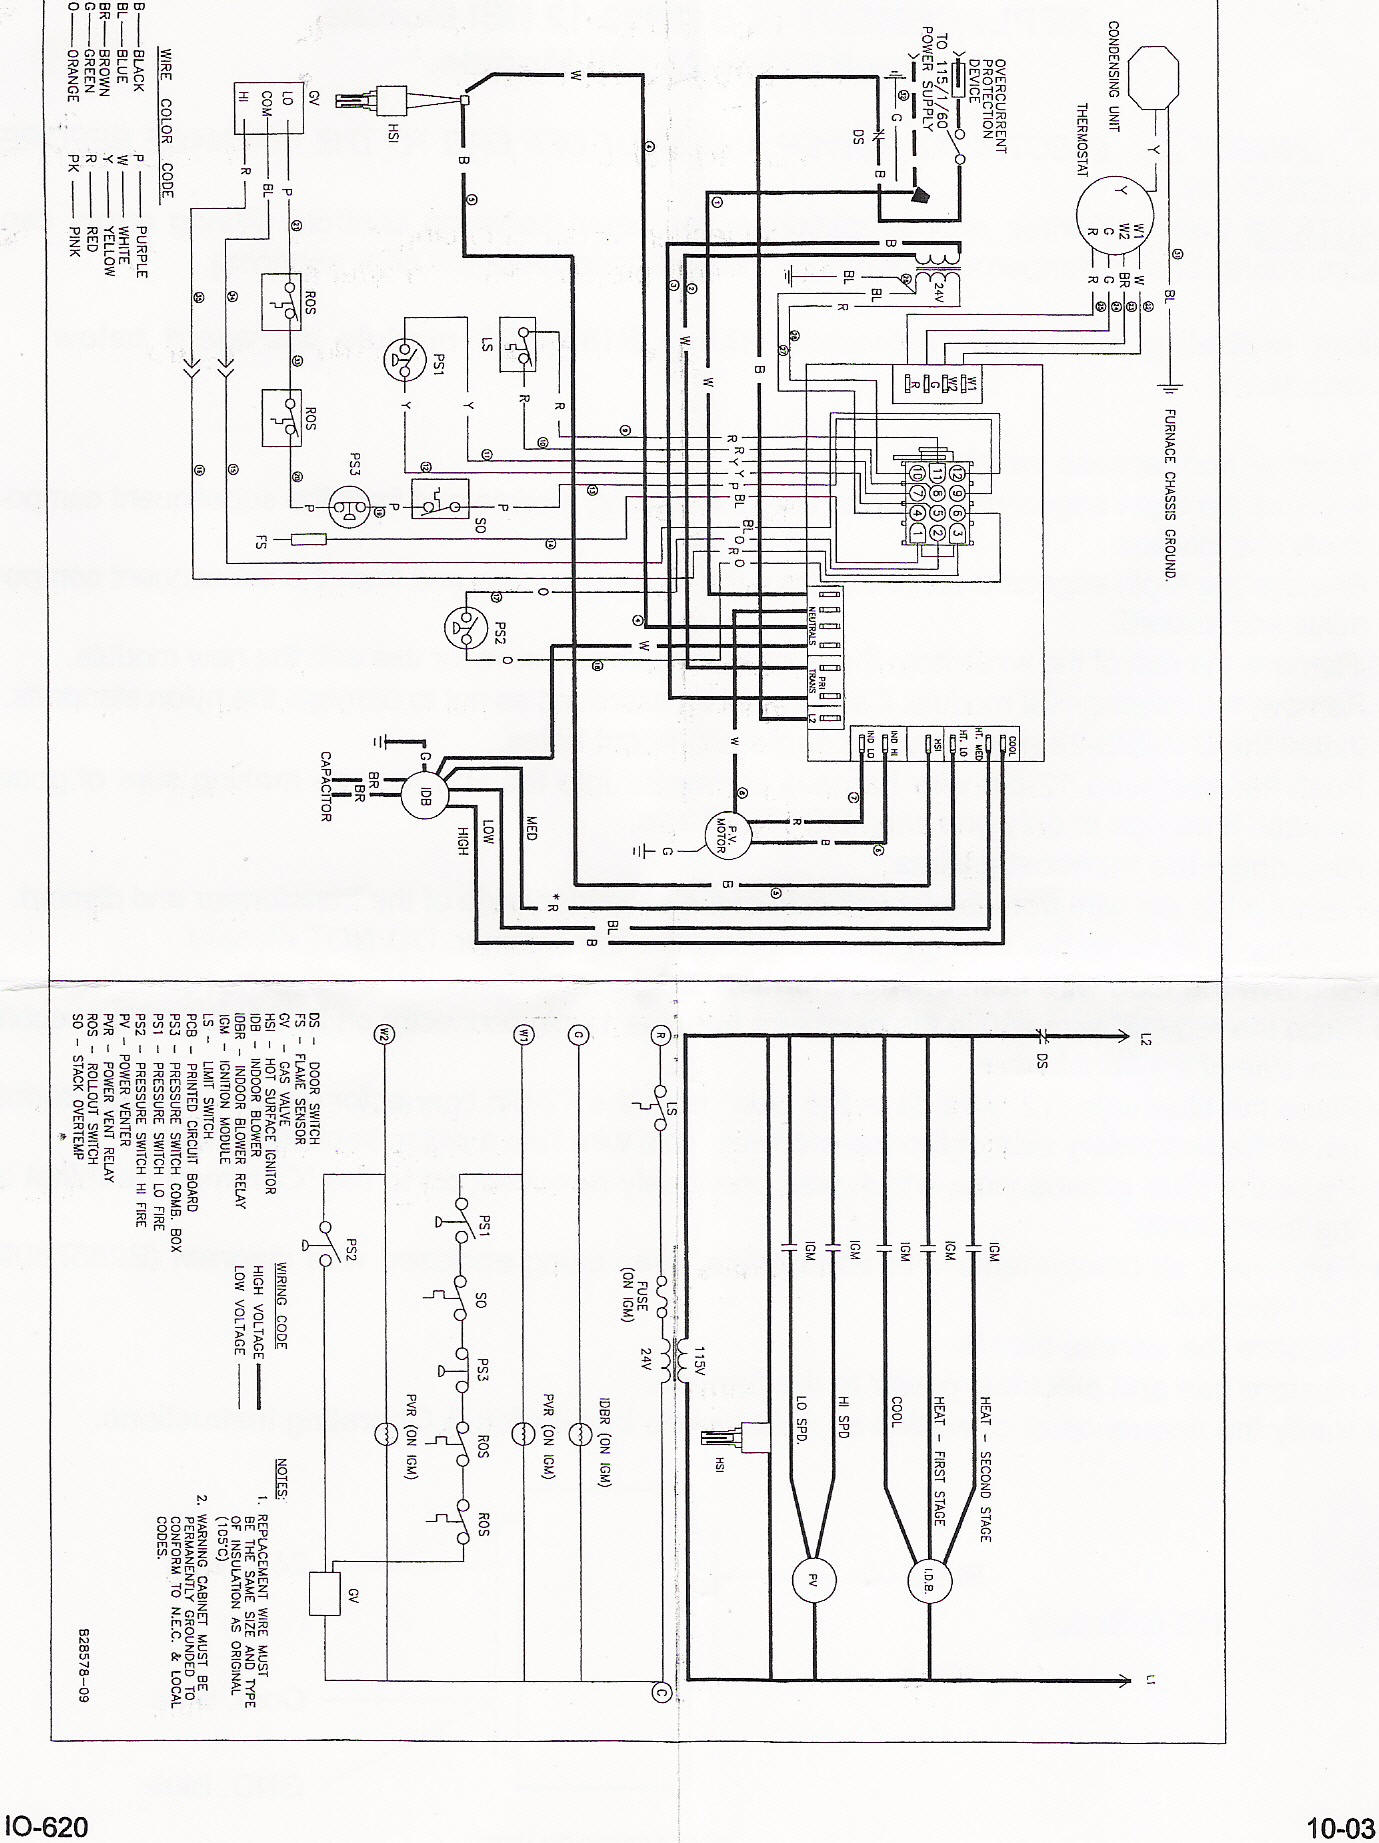 goodma2 instr trane furnace wiring diagram thermal protector wiring diagram trane xe90 wiring diagram at virtualis.co